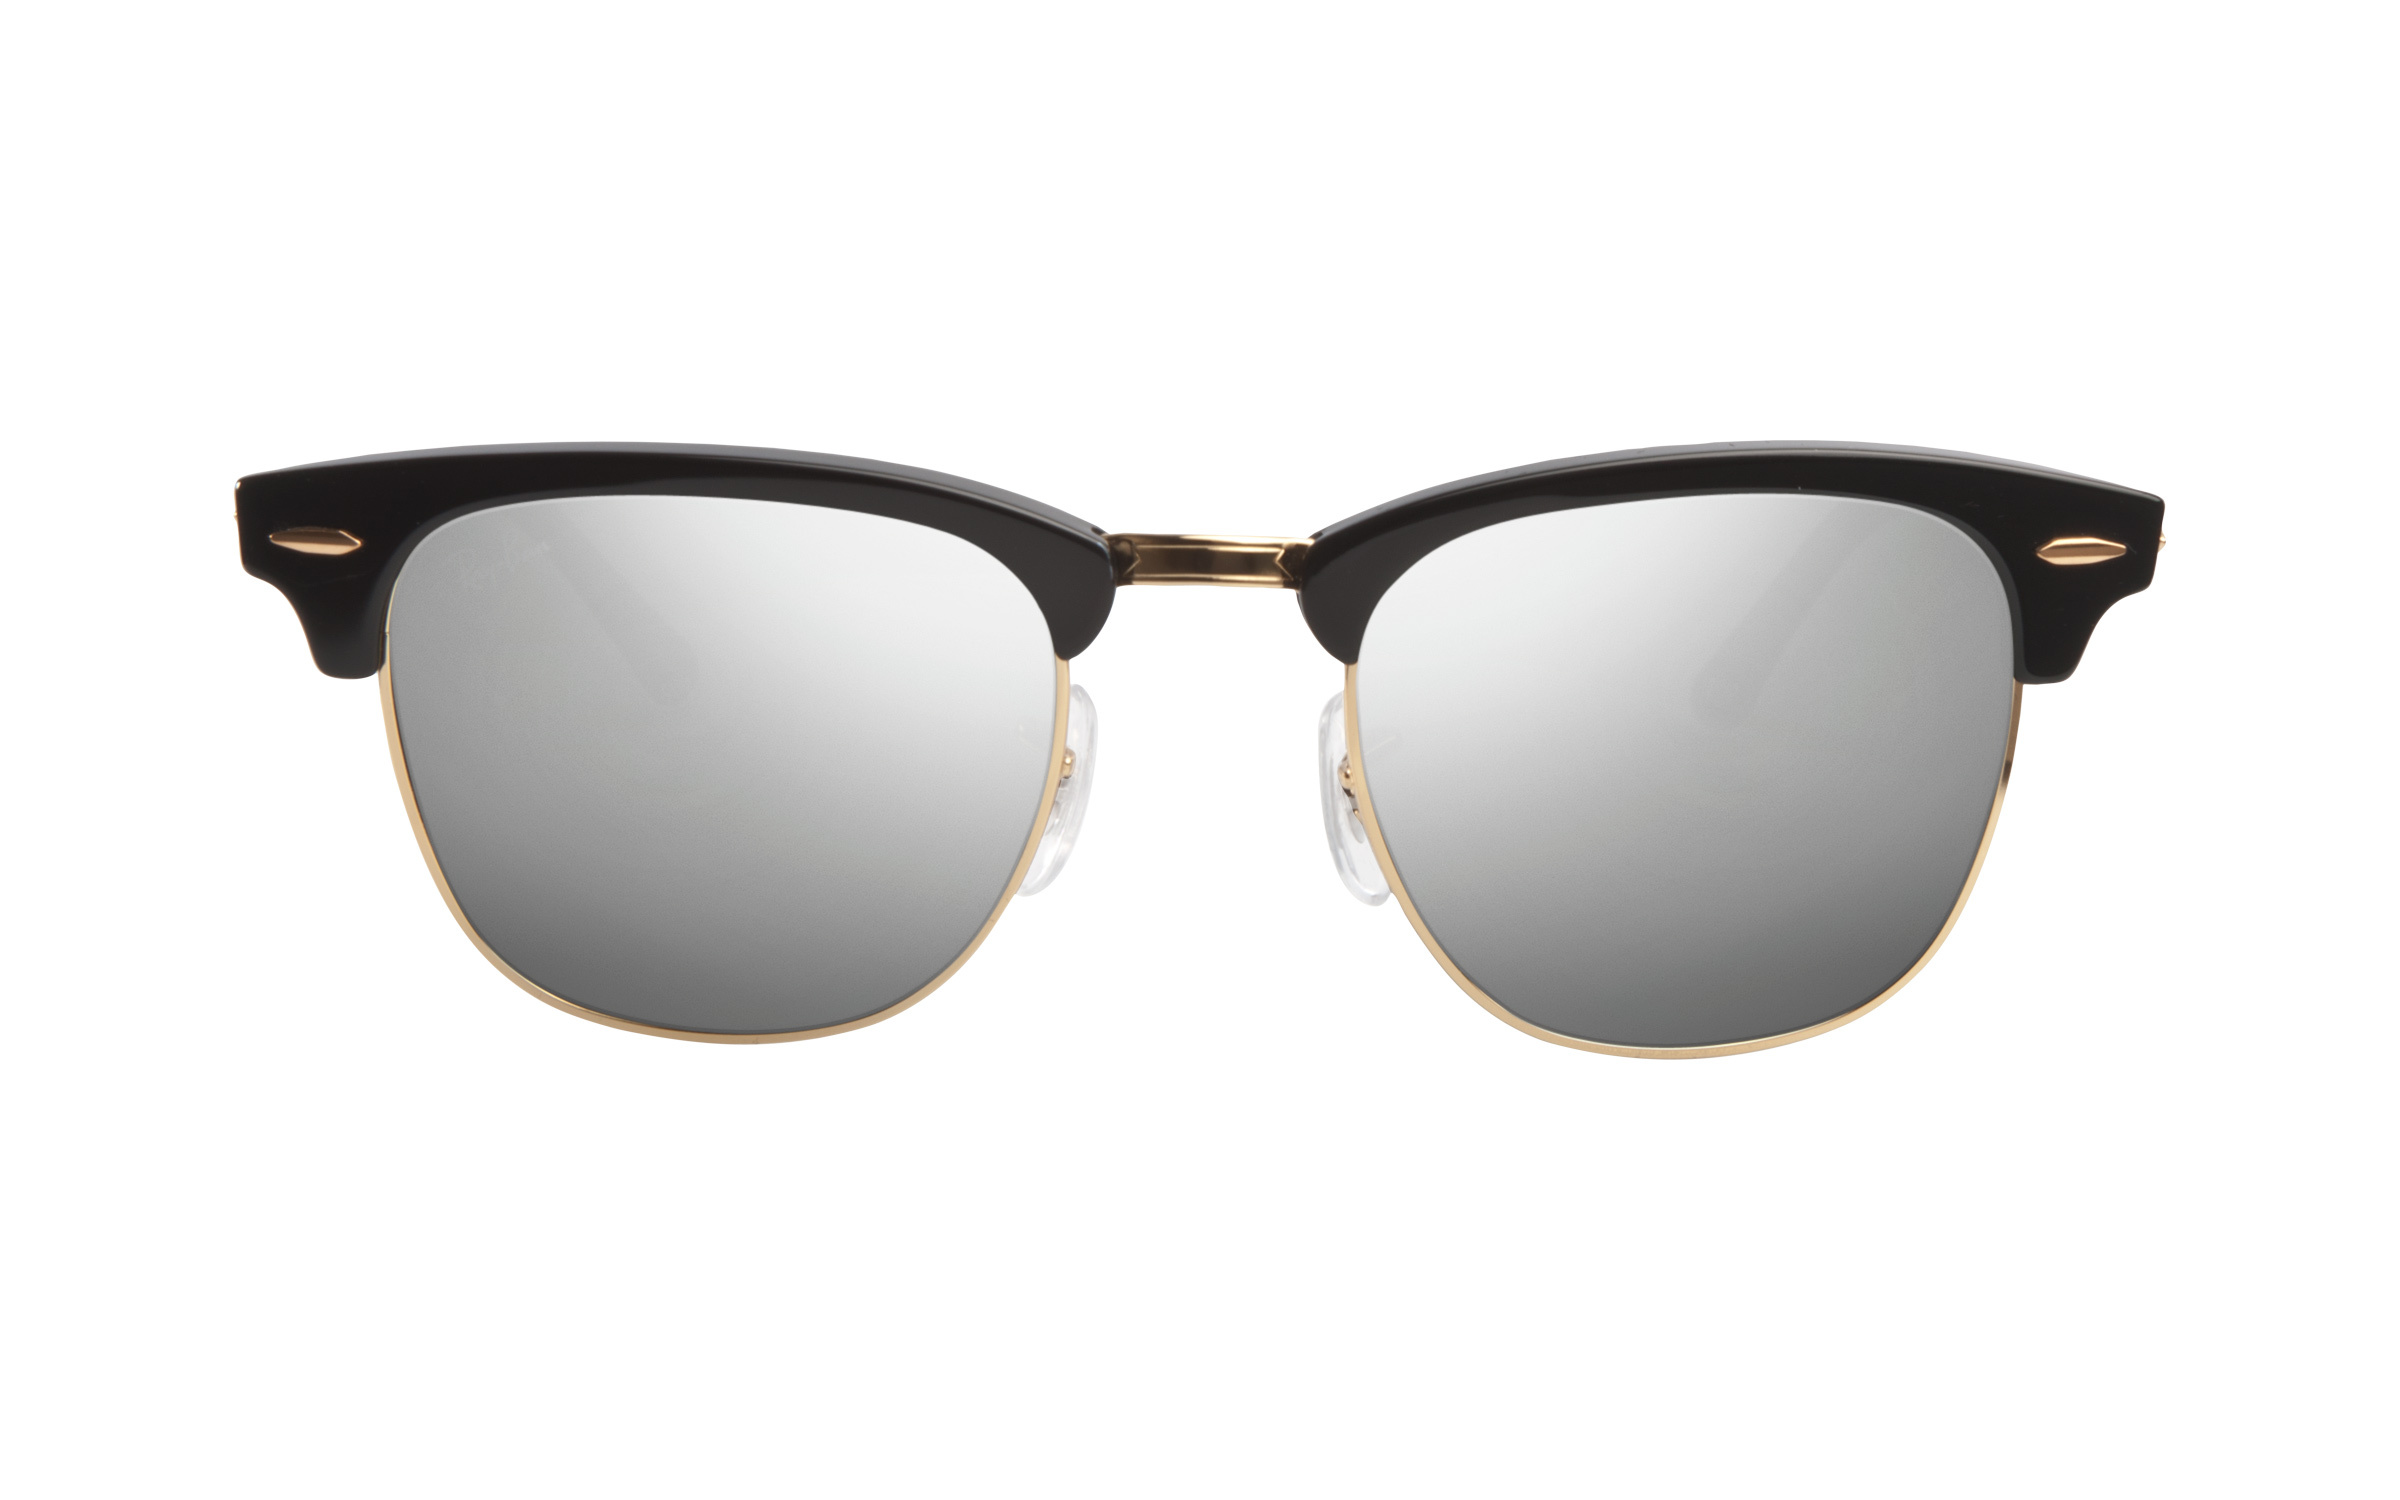 rb3016 49  Shop confidently for Ray-Ban RB3016-49 sunglasses online with ...